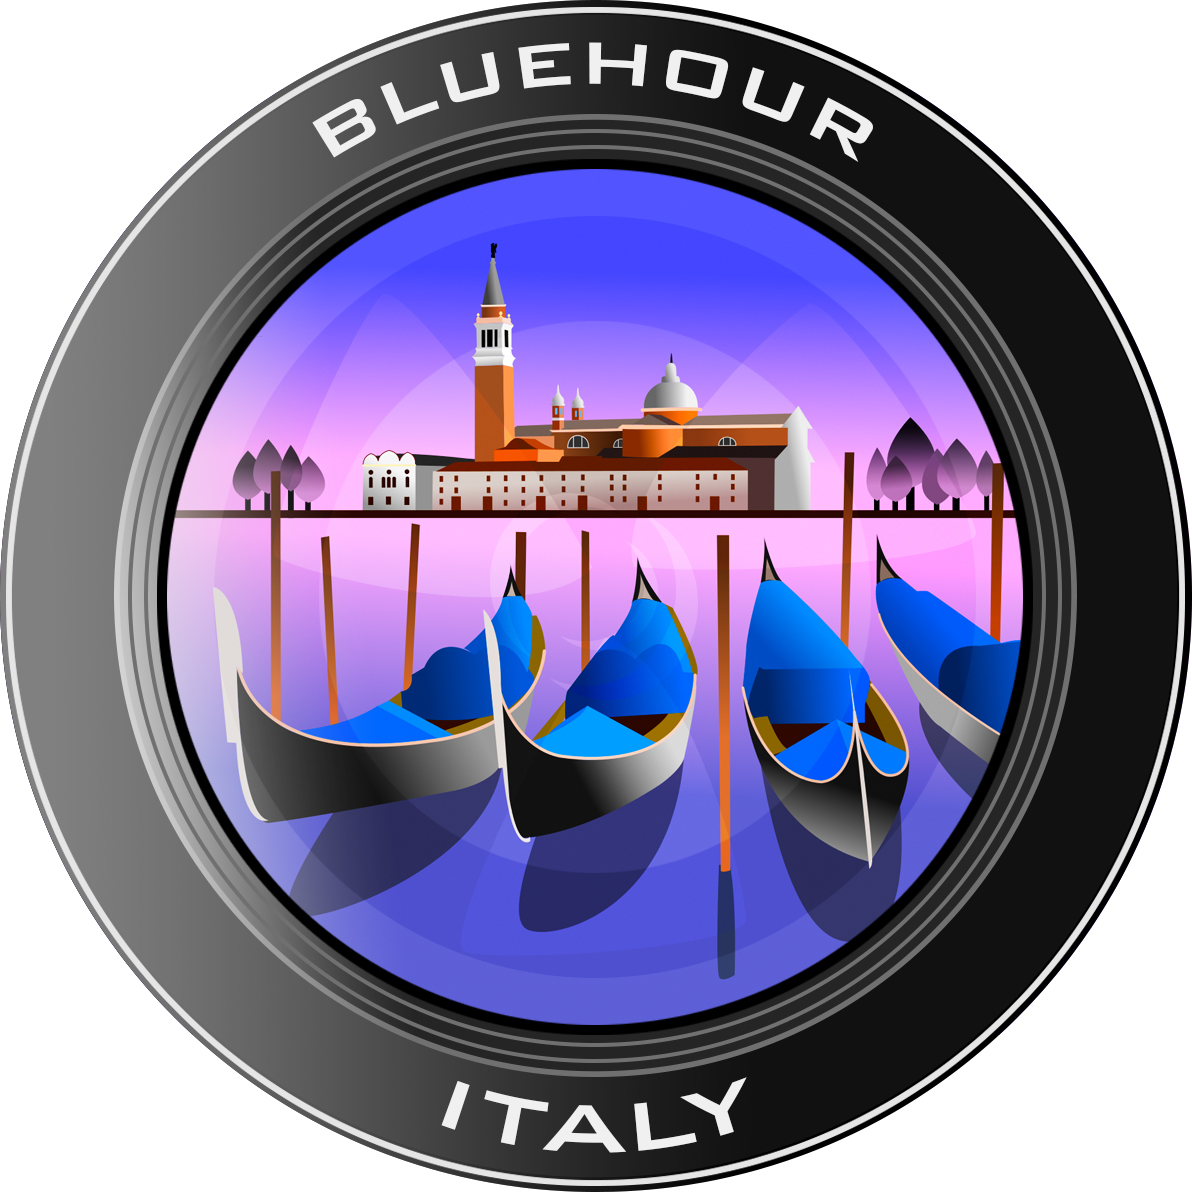 In honor of our first tour of 2018: the Italy design in our new sticker series. All designs are digitized photographs from our travels.They'll potentially even become tour mementos in the form of a T-shirt!